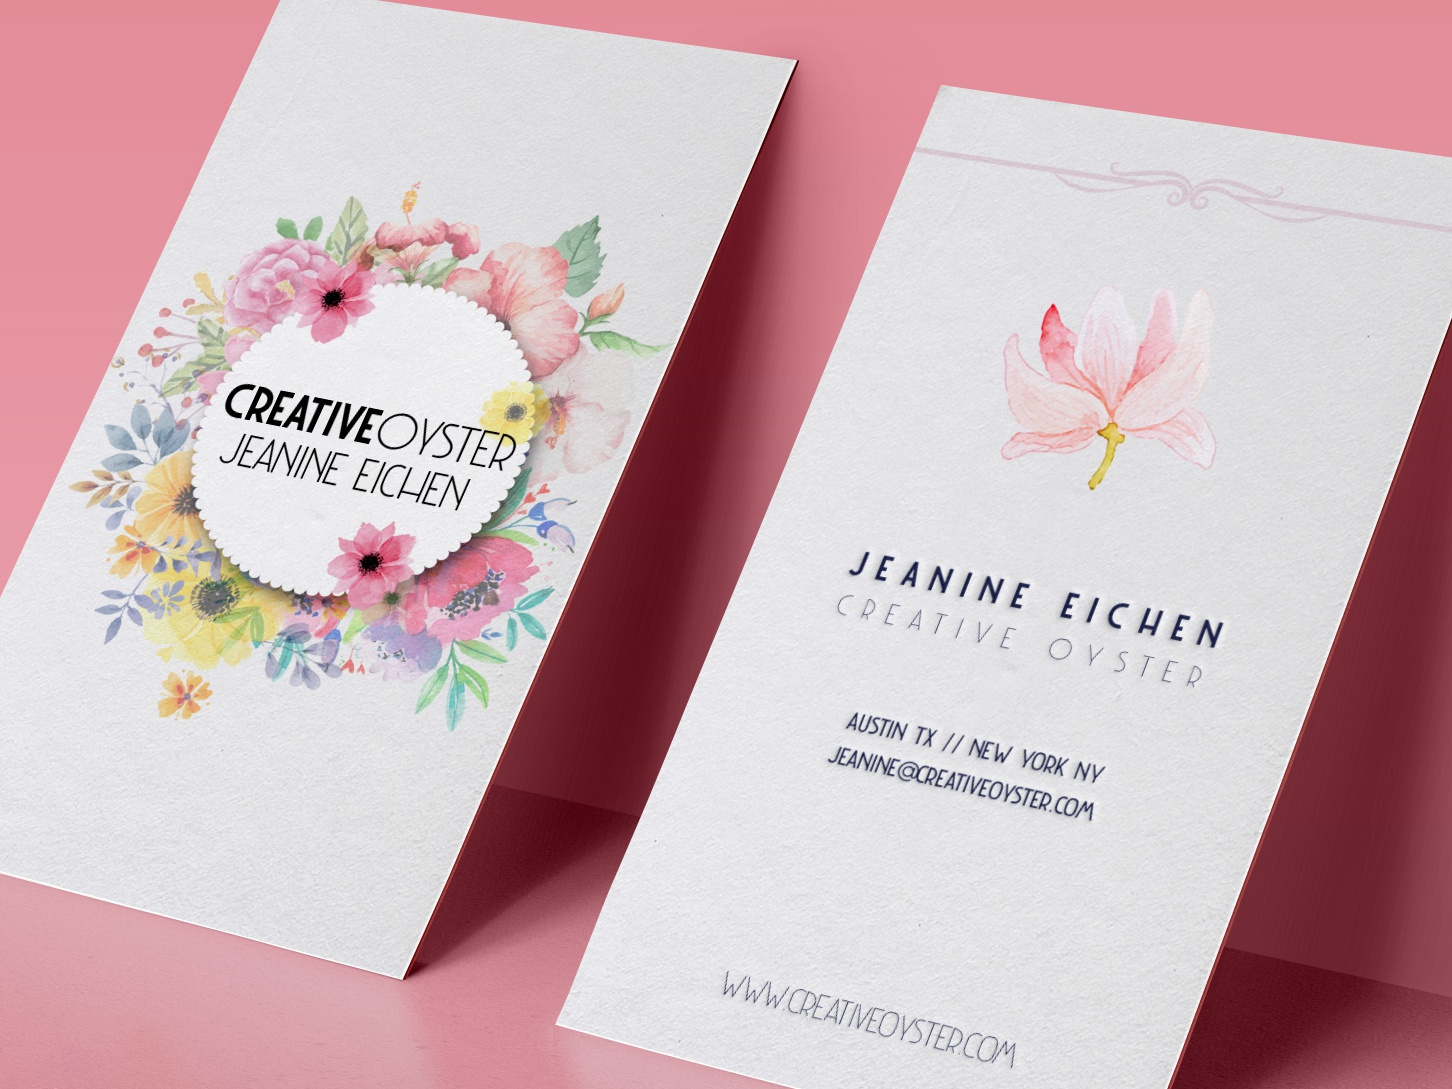 Creativeoyster business cards